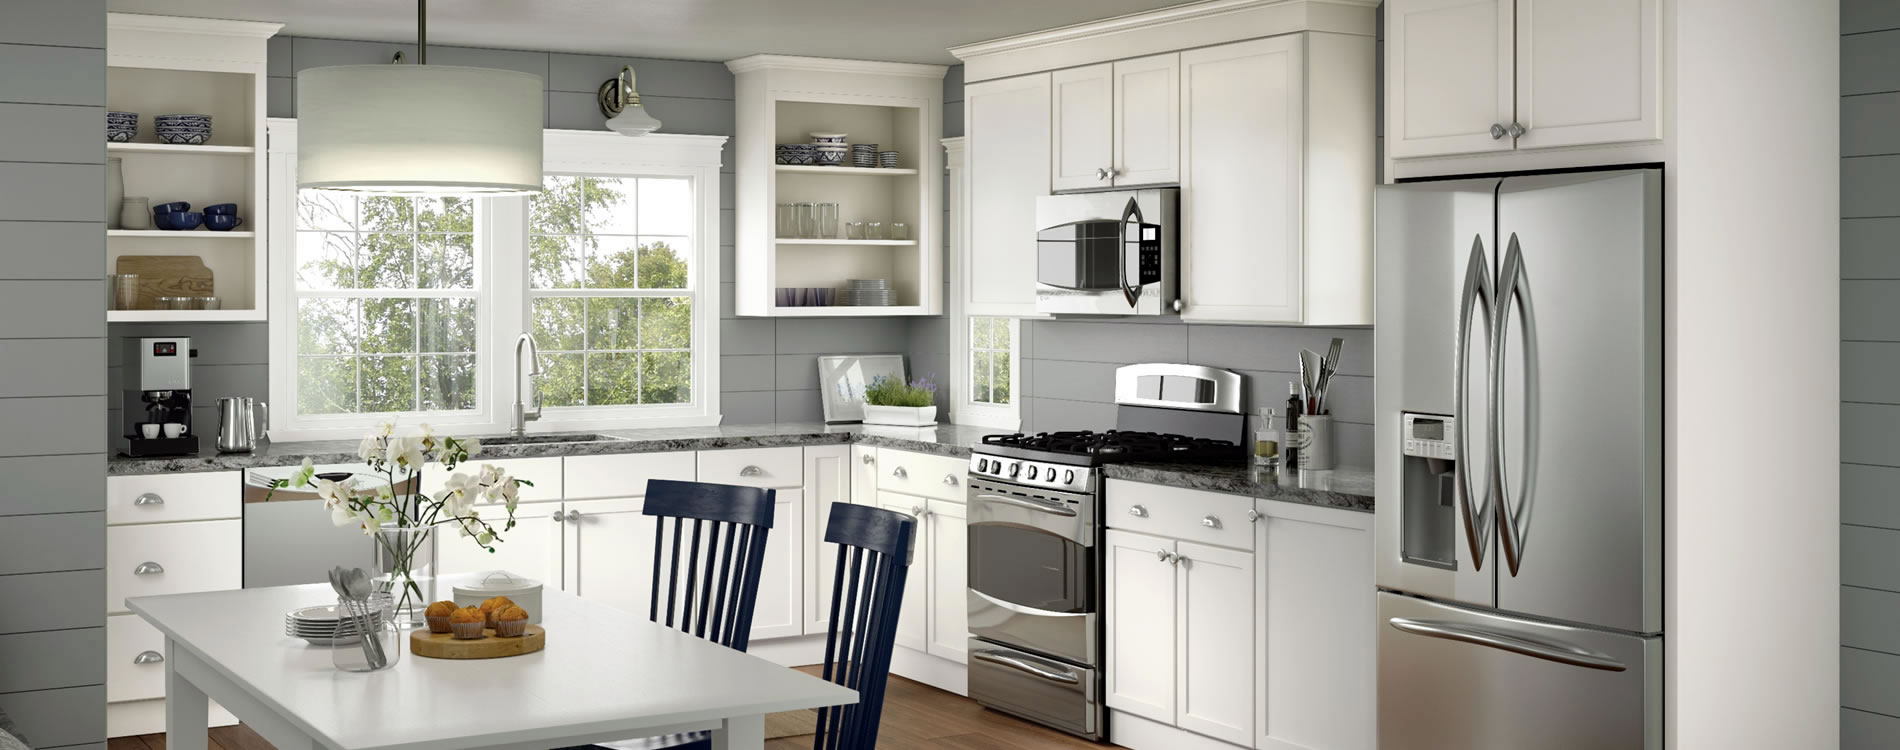 Kitchen Bathroom Cabinets Company Great American Kitchen